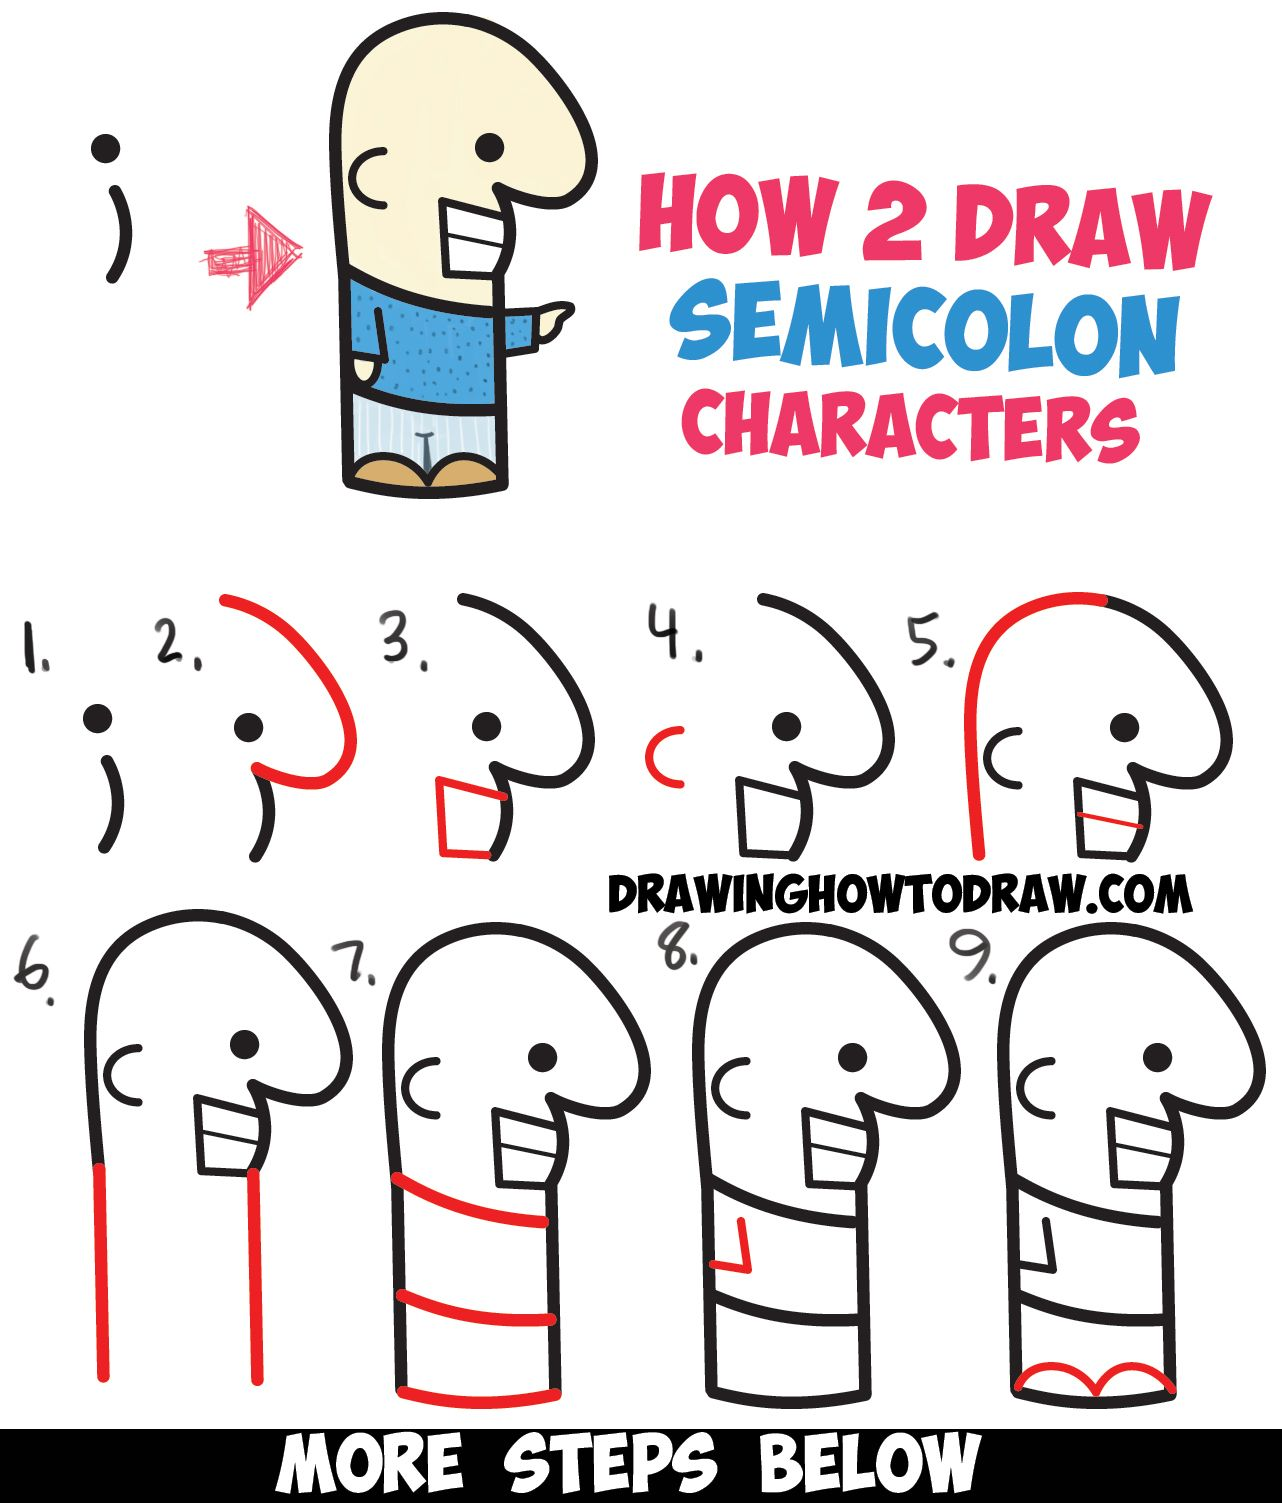 How To Draw Cute Cartoon Characters From Semicolons Easy Step By Step Drawing Tutorial For Kids How To Draw Step By Step Drawing Tutorials Easy Cartoon Drawings Cute Cartoon